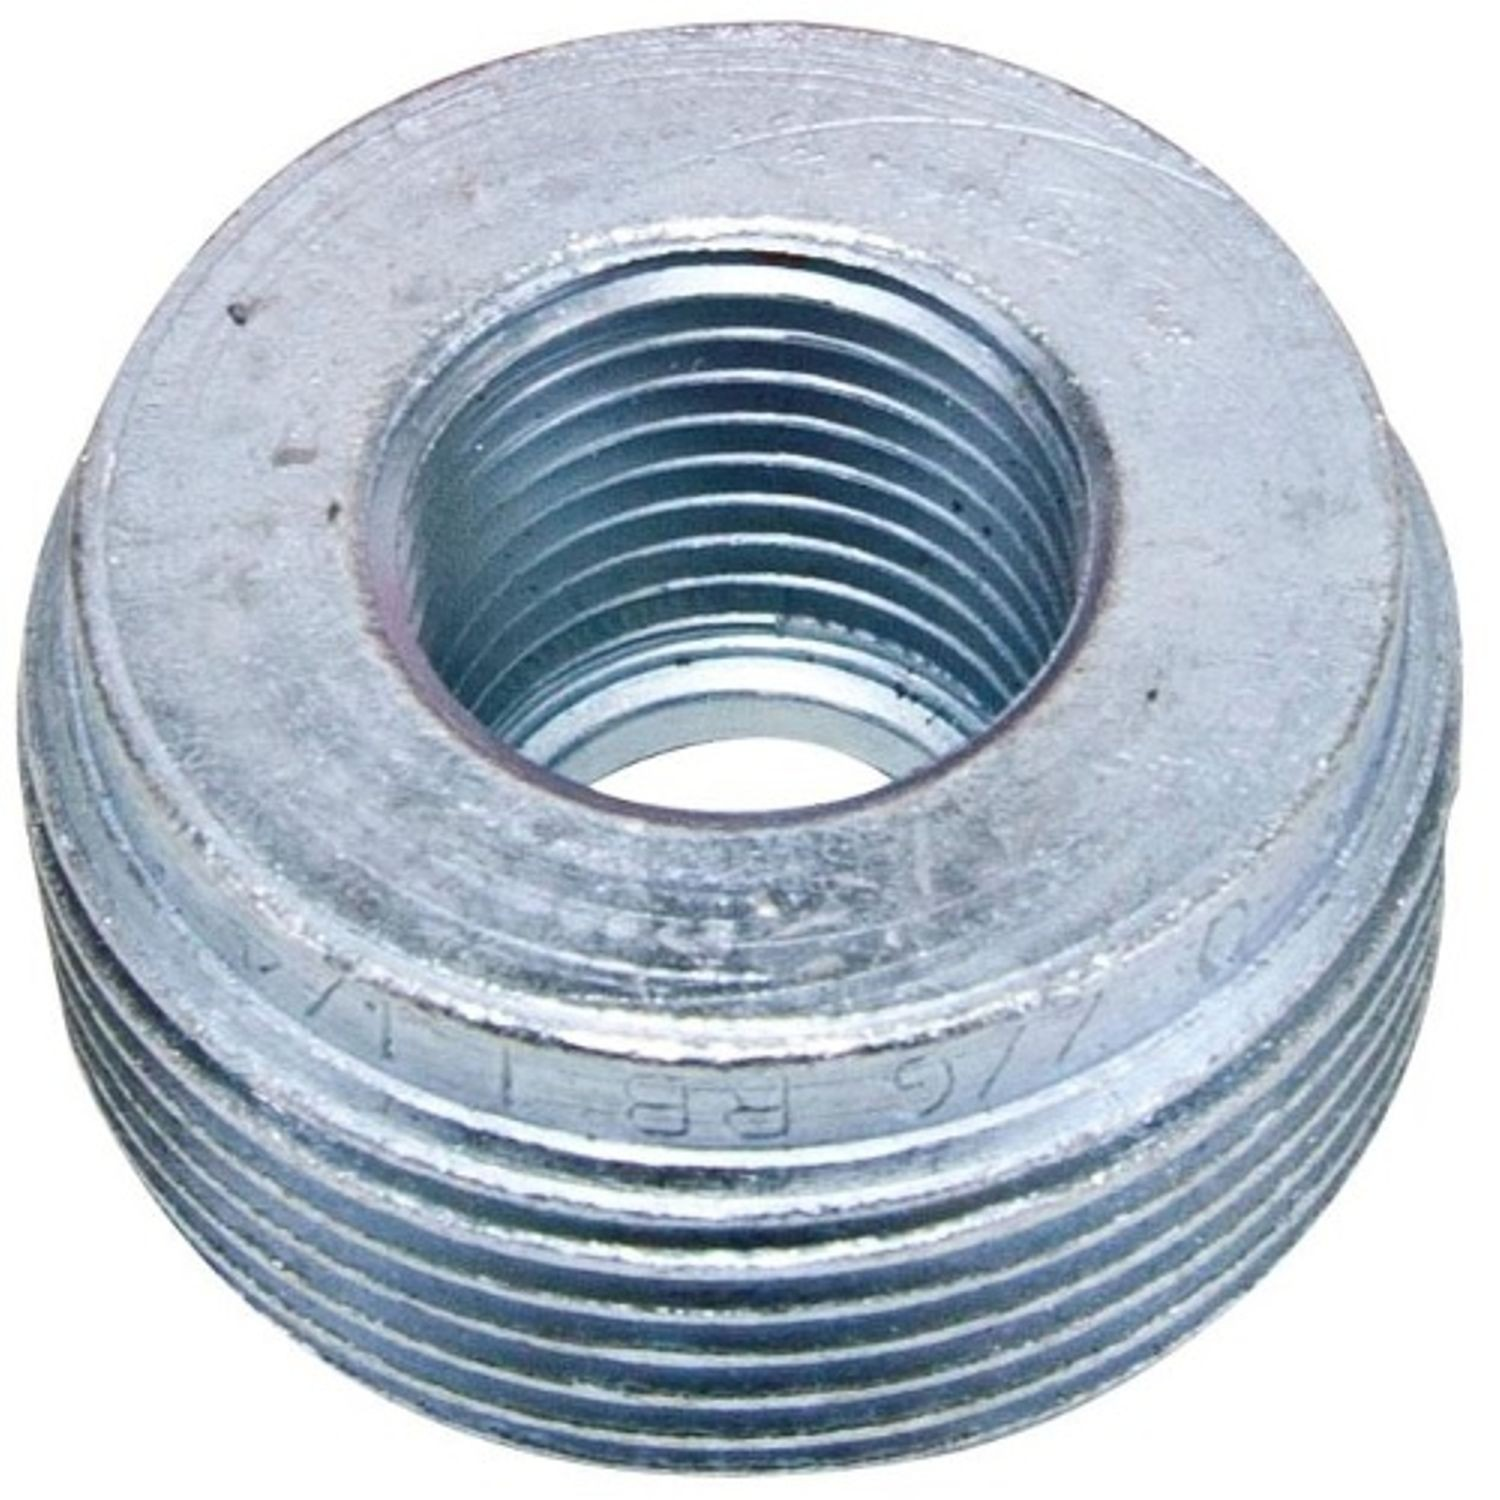 Appleton® RB200-100A Threaded Reducing Bushing, 2 to 1 in Trade ...